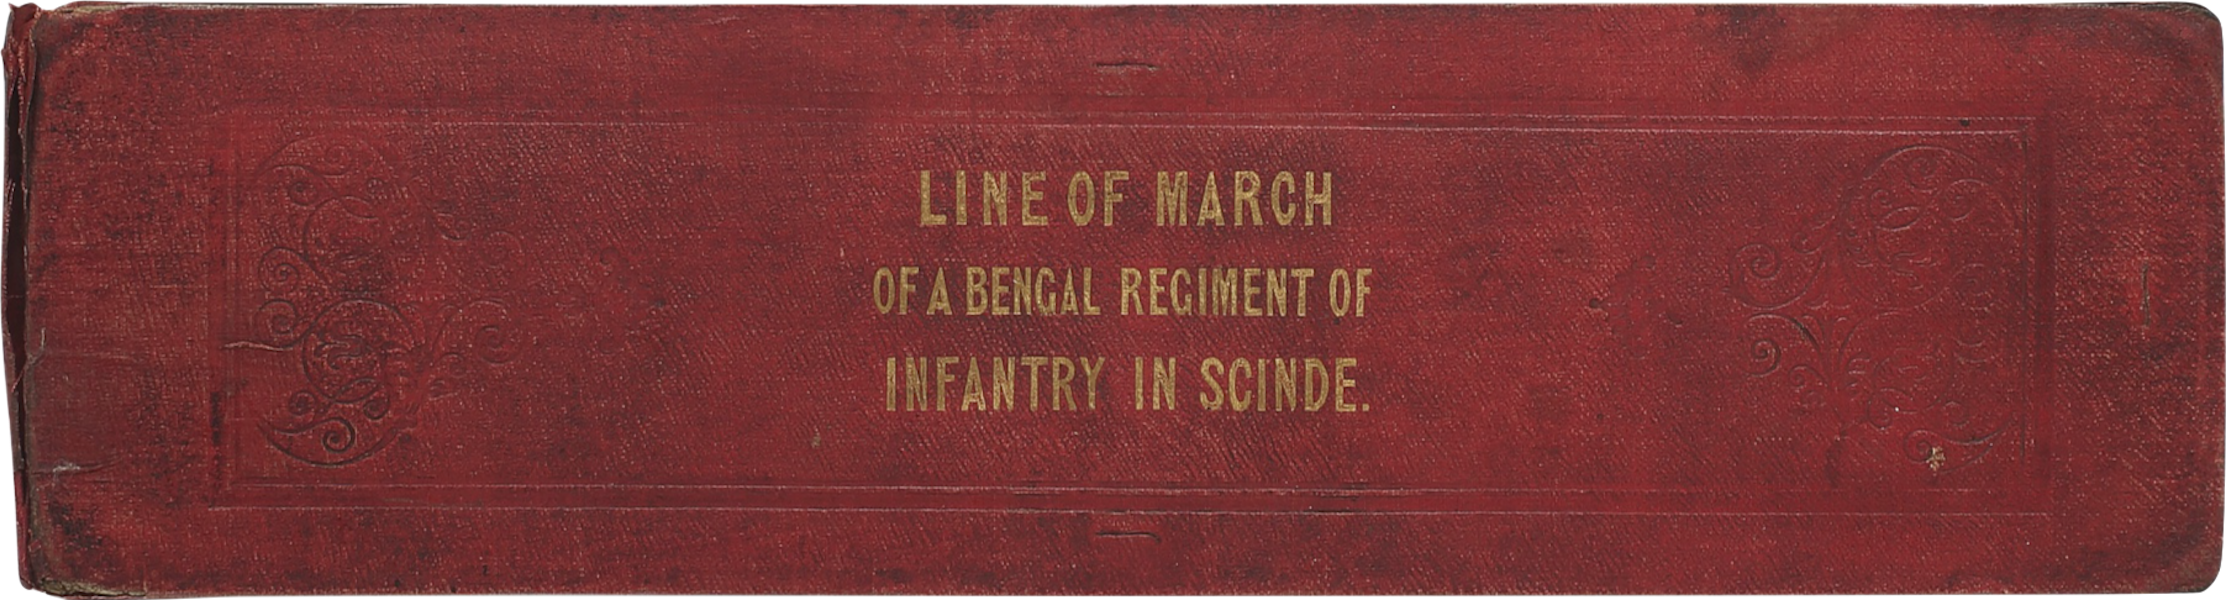 Line of March of a Bengal Regiment of Infantry - Front Cover (1840)